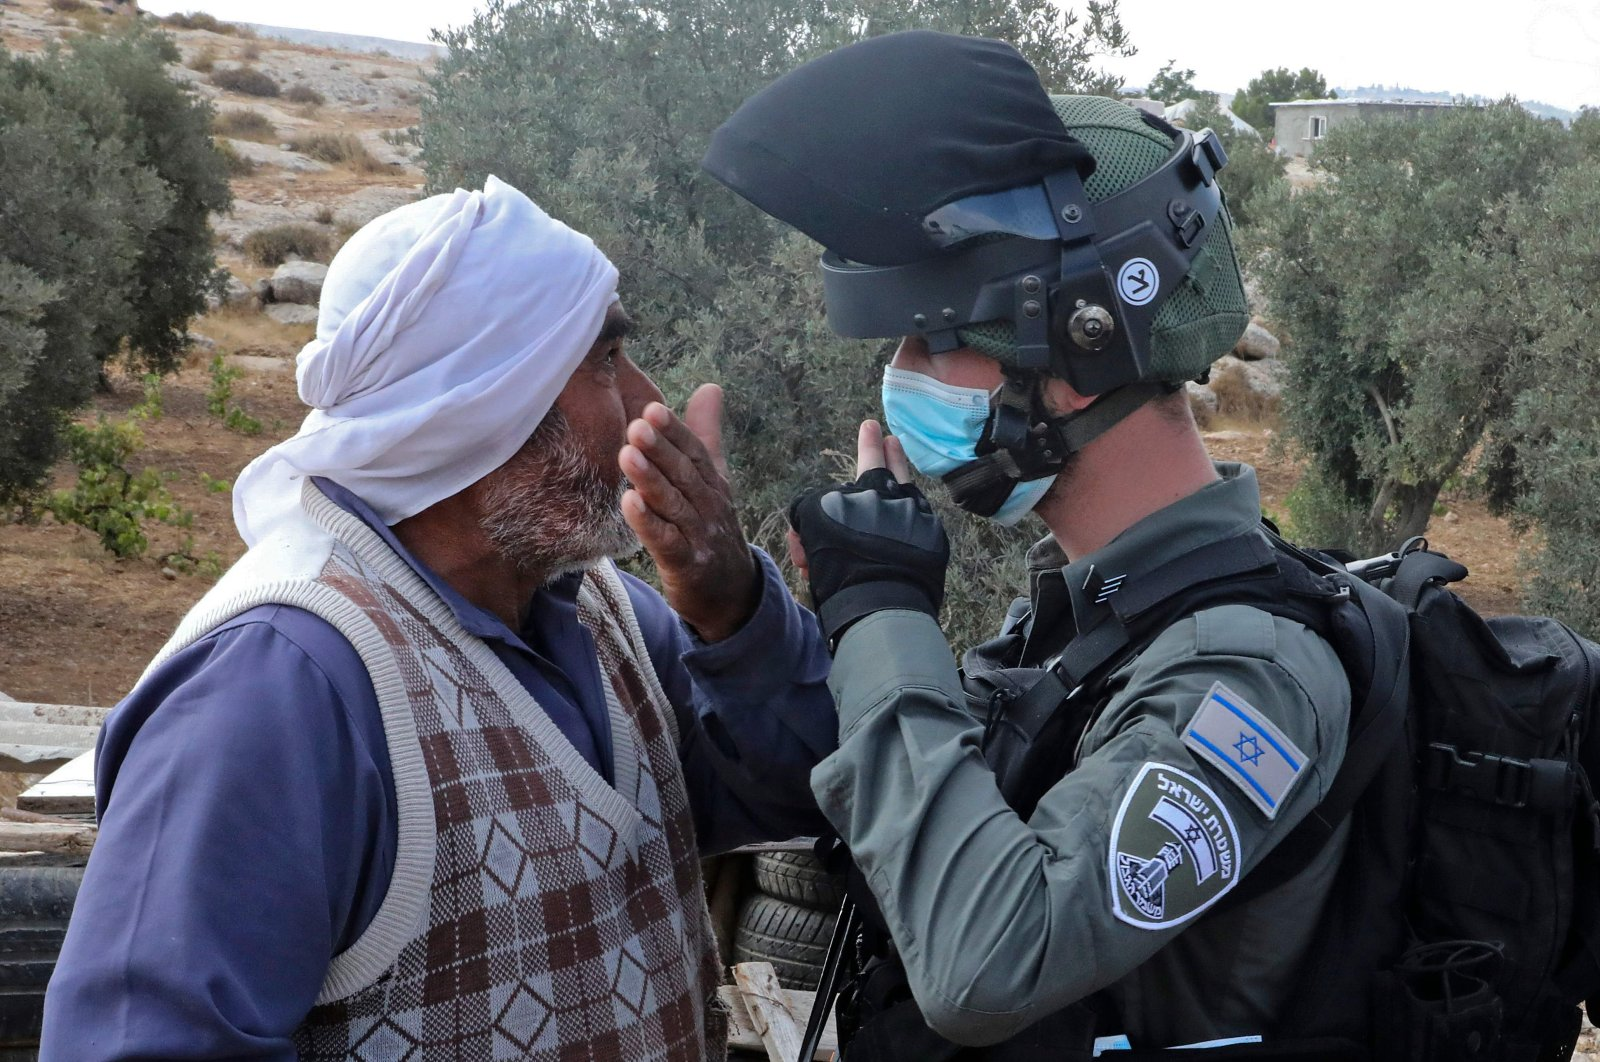 Protestors confront Israeli forces as a structure serving as a home to a Palestinian family is demolished in the village of Susya south Yatta in the southern West Bank, Aug. 11, 2020. (AFP Photo)